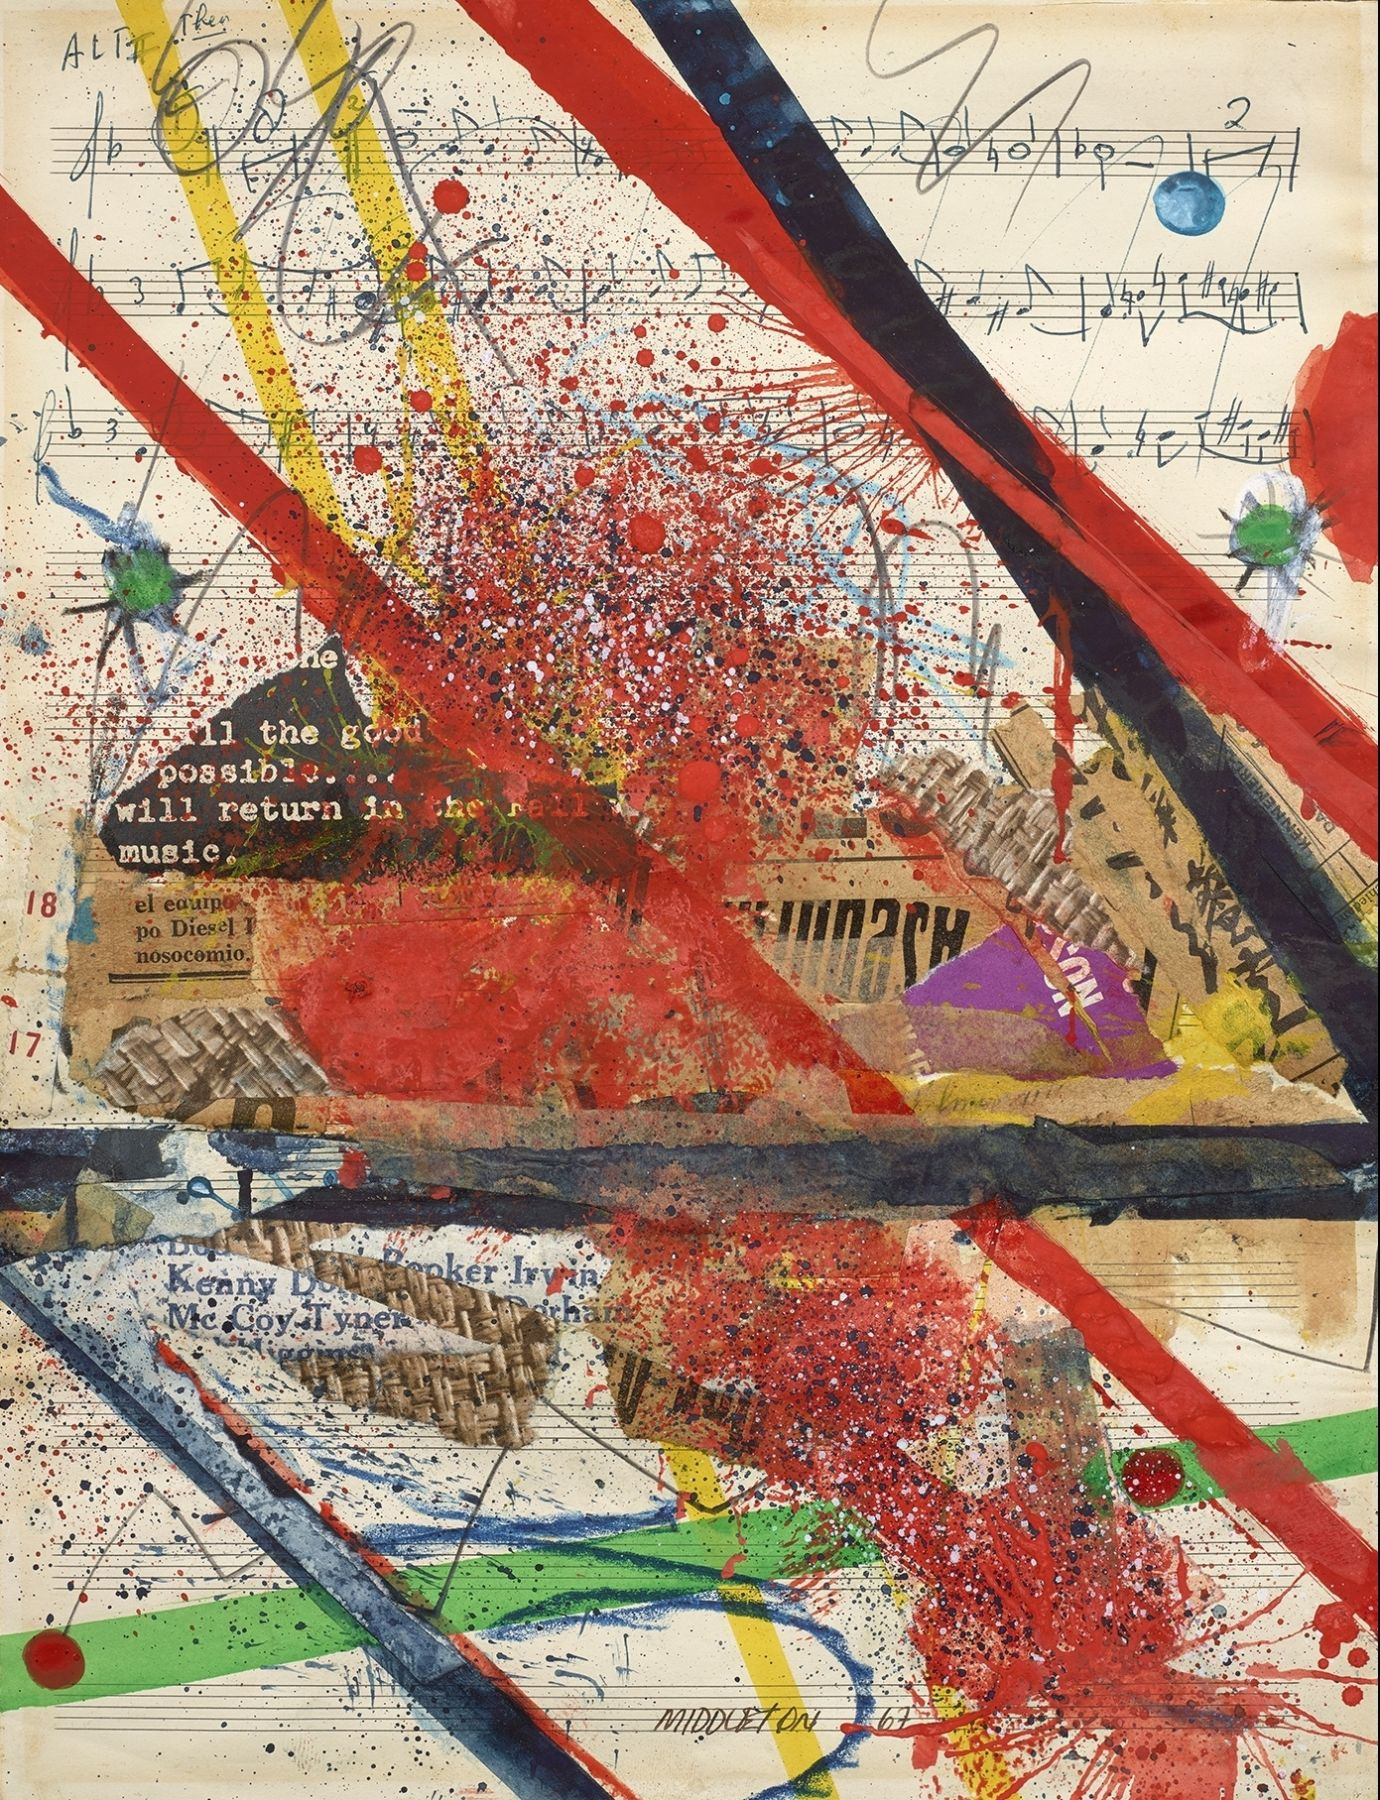 Slashes of Sound, 1965, Mixed media and collage on paper